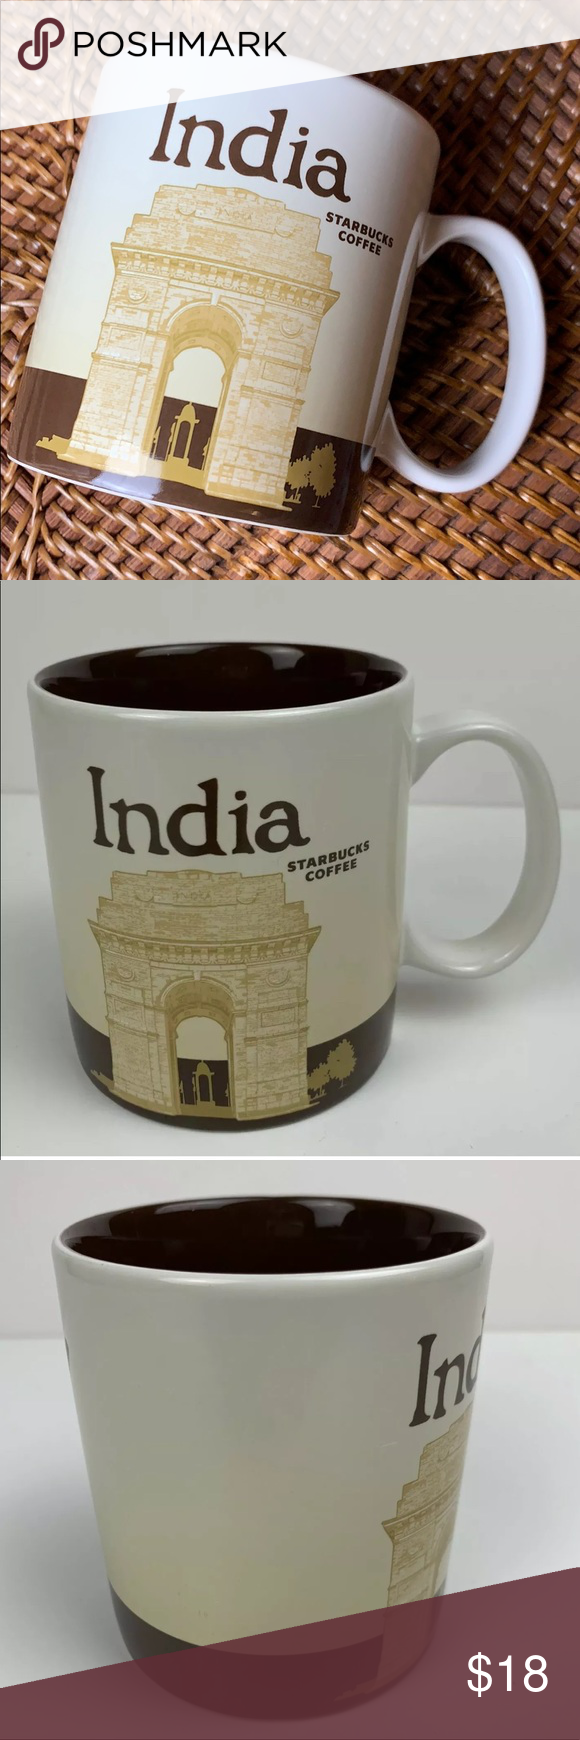 Starbucks India Ceramic Mug 16oz Coffee Cup 2012 Starbucks